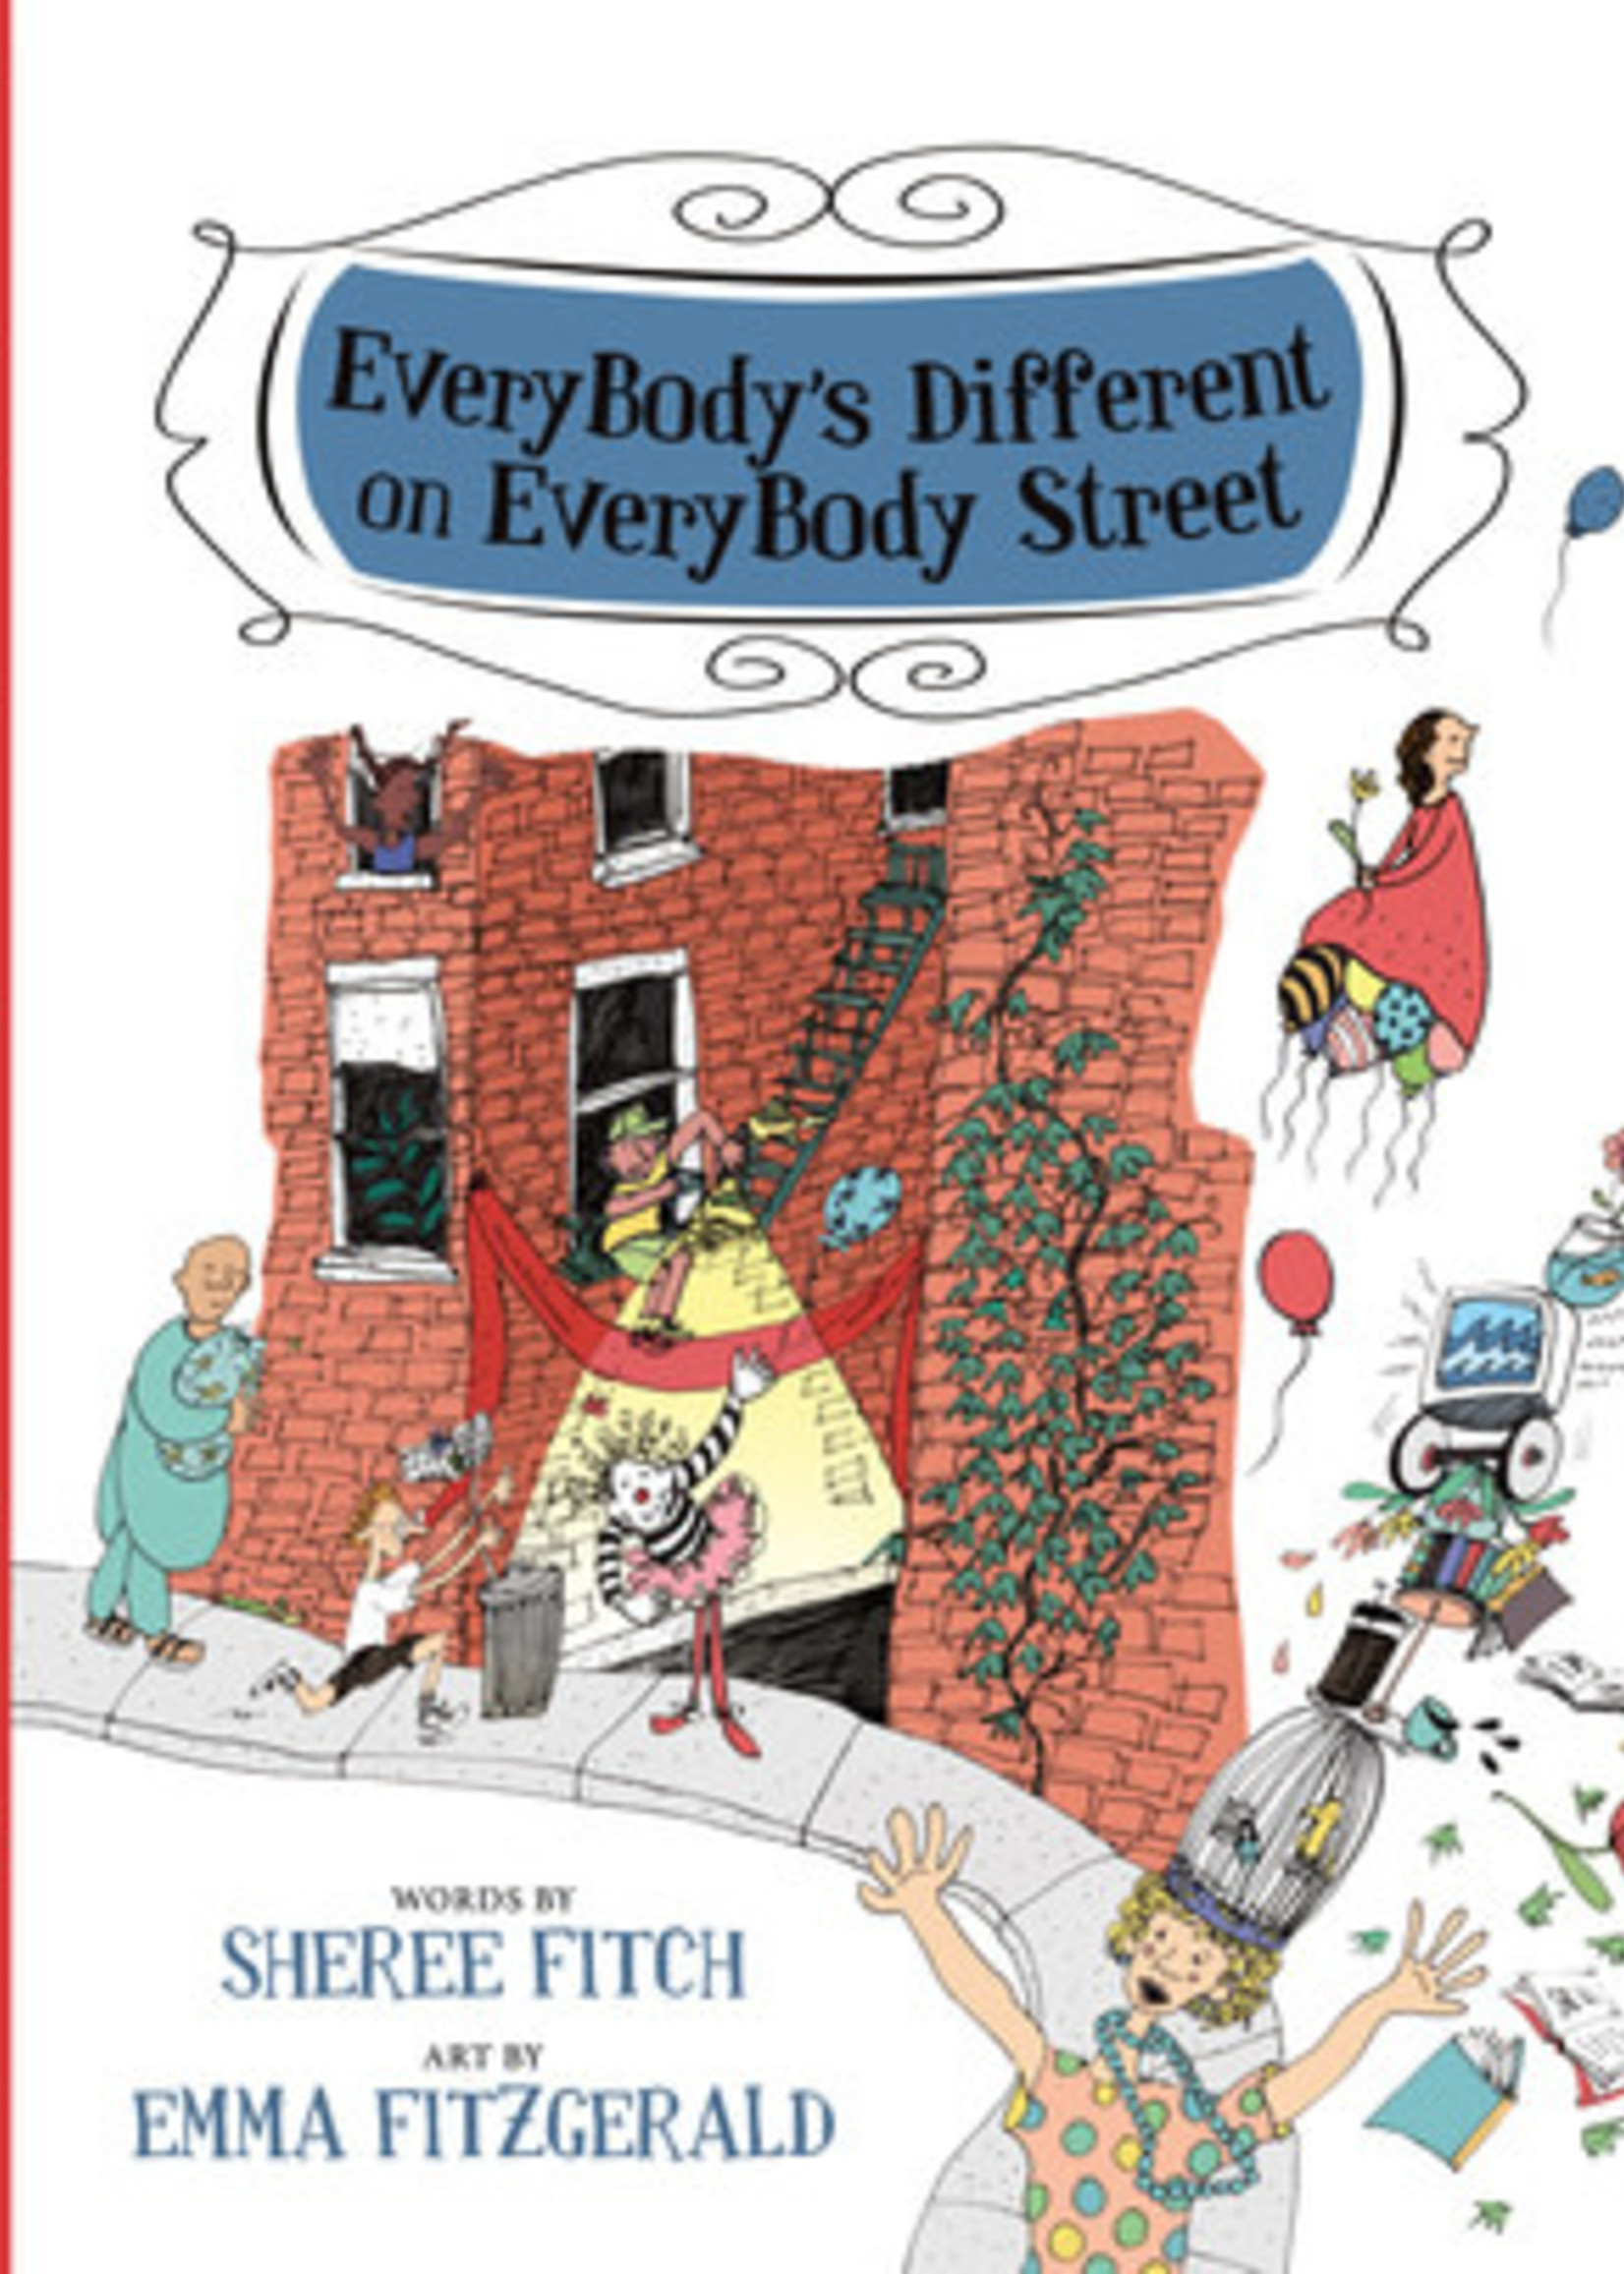 EveryBody's Different on EveryBody Street by Sheree Fitch,  Emma FitzGerald